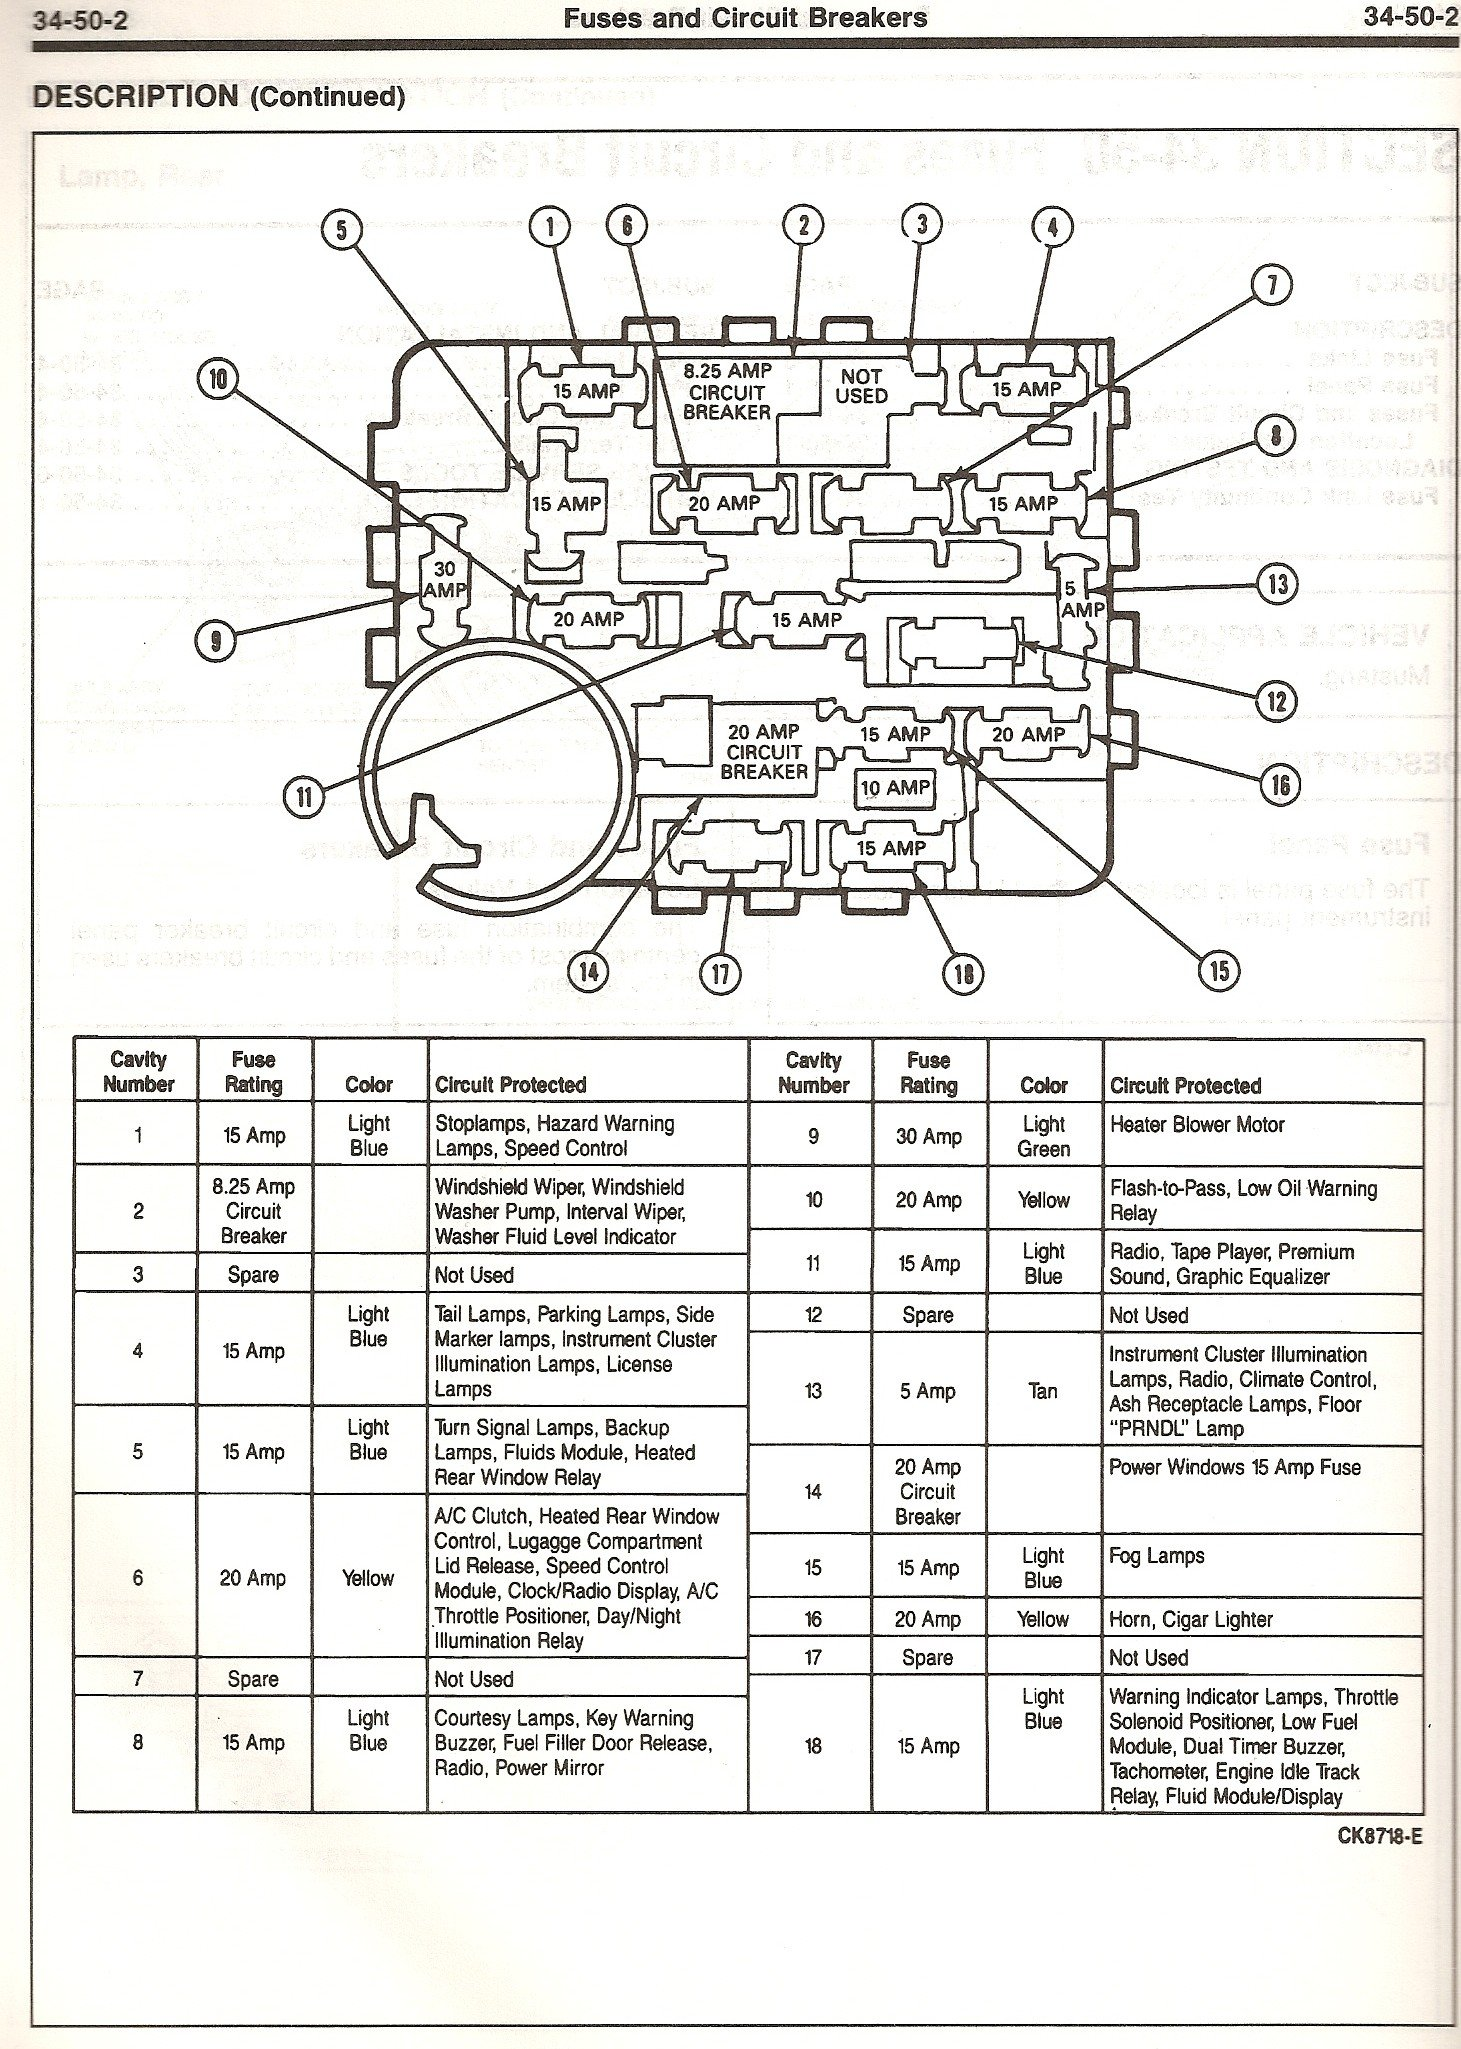 30633d1185070172 1990 2 3 mustang missing scan7 04 gt fuse box wiring diagram simonand 2006 ford mustang gt fuse box diagram at soozxer.org